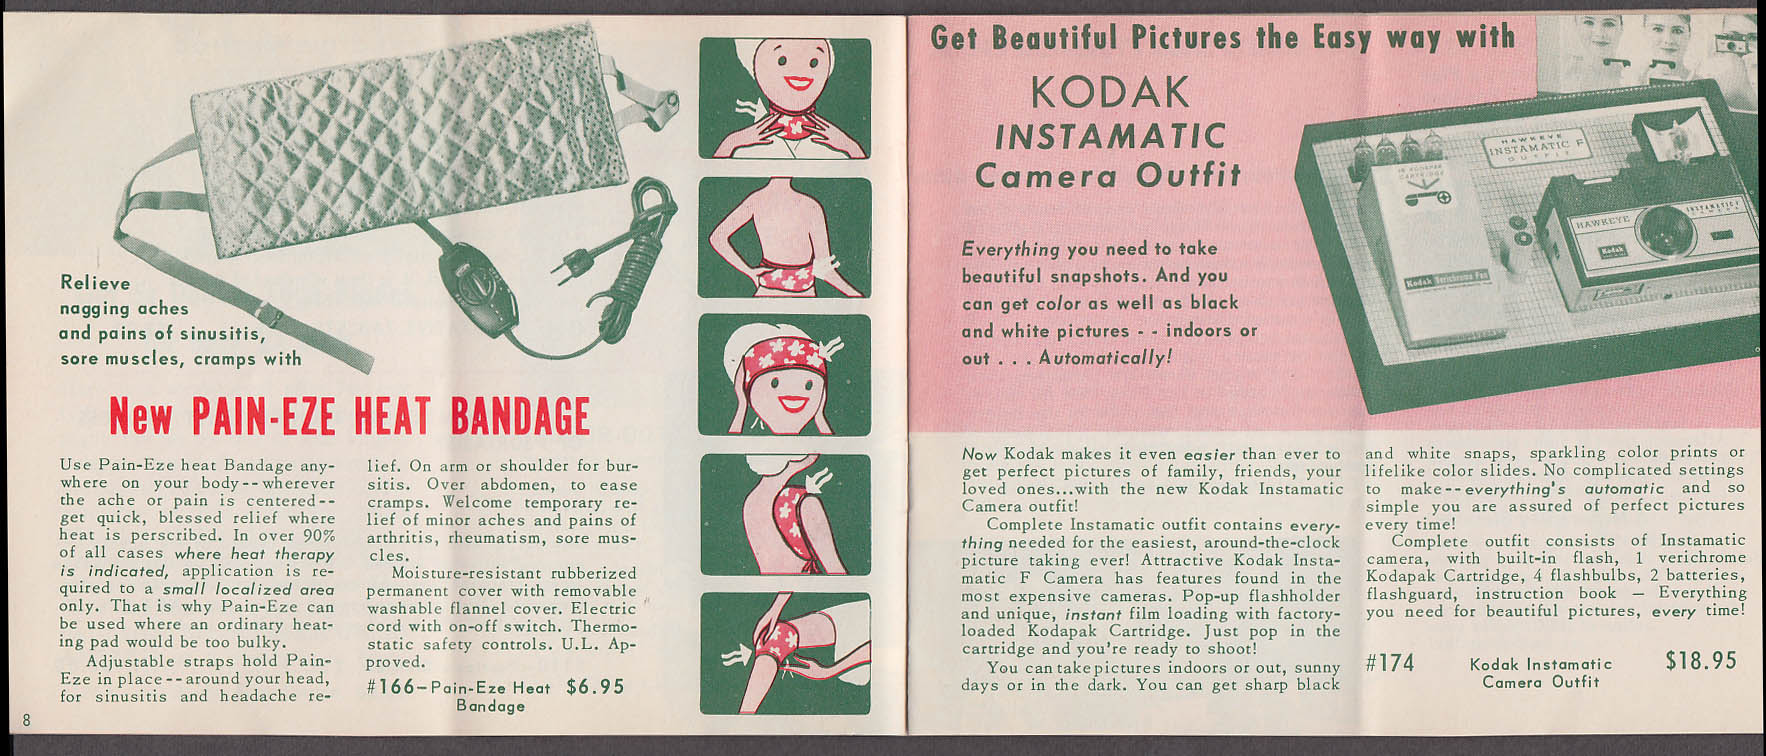 Christmas Mail Order Catalog.Scs Club Christmas Shopping Mail Order Catalog 1960s Camera Health